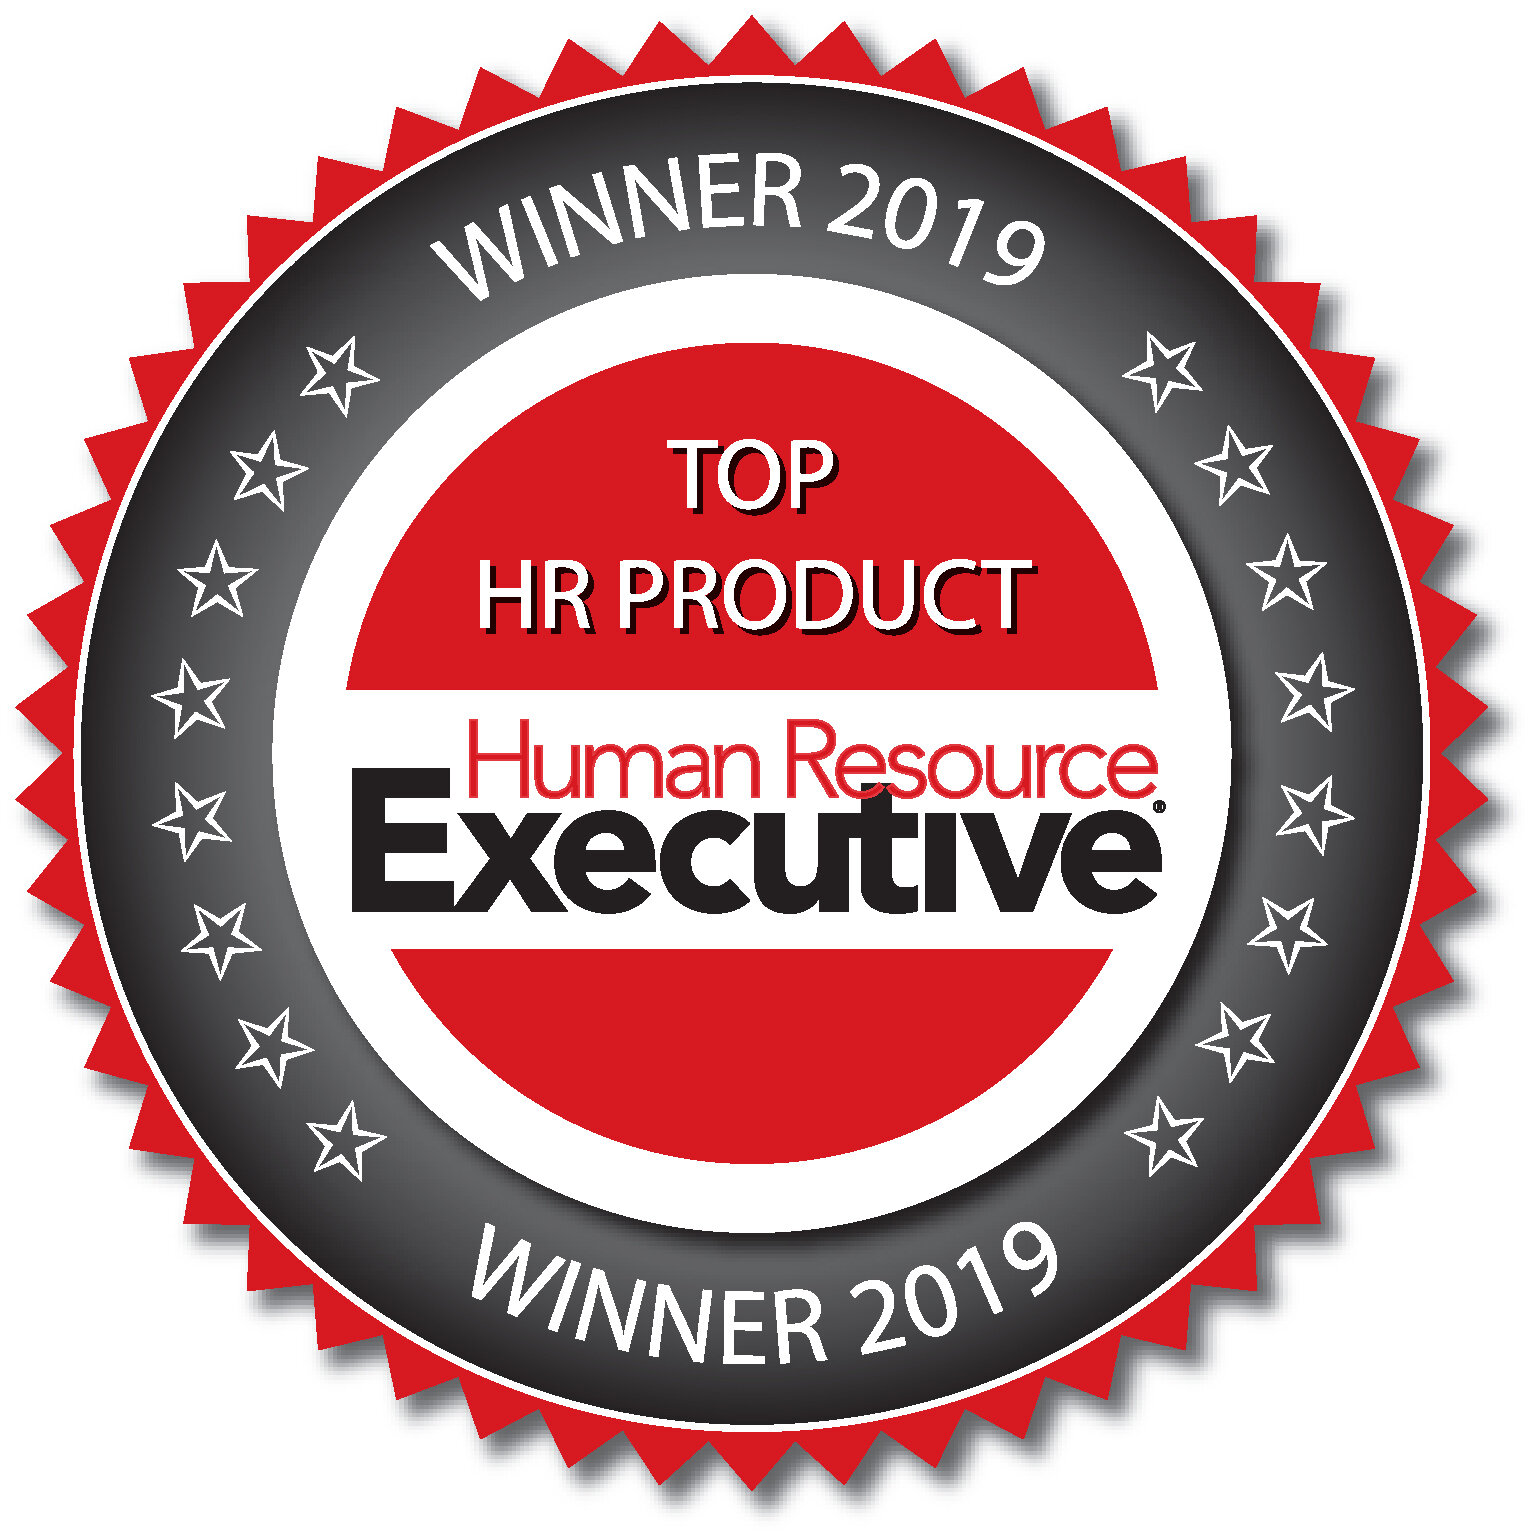 2019-Top-HR-Product-Sealo.jpg